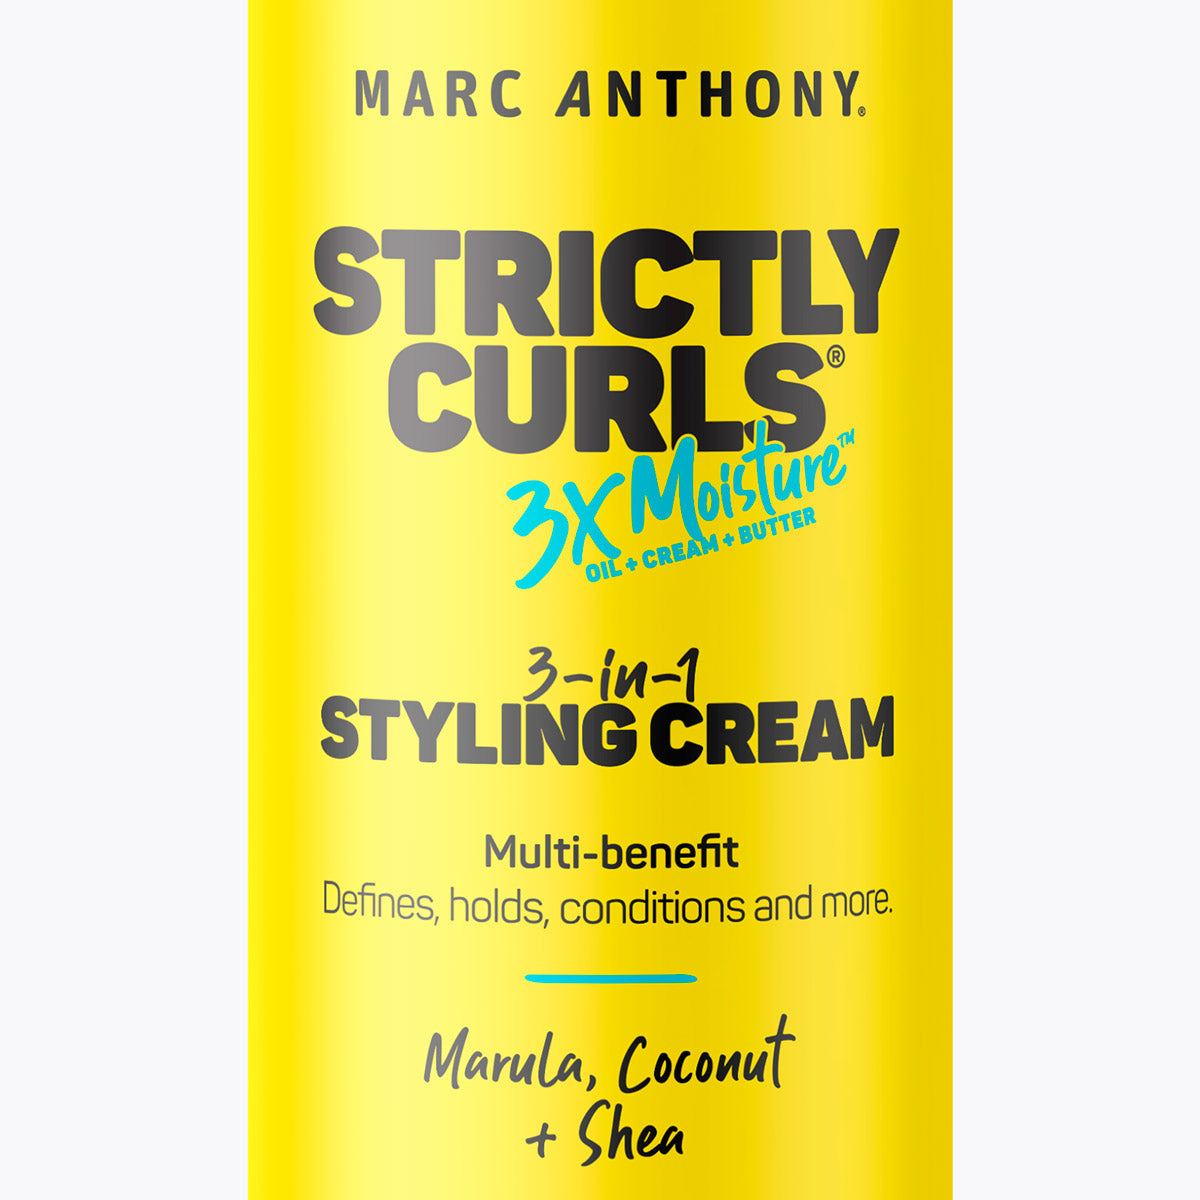 Strictly Curls® 3X Moisture <br> 3-in-1 Styling Cream